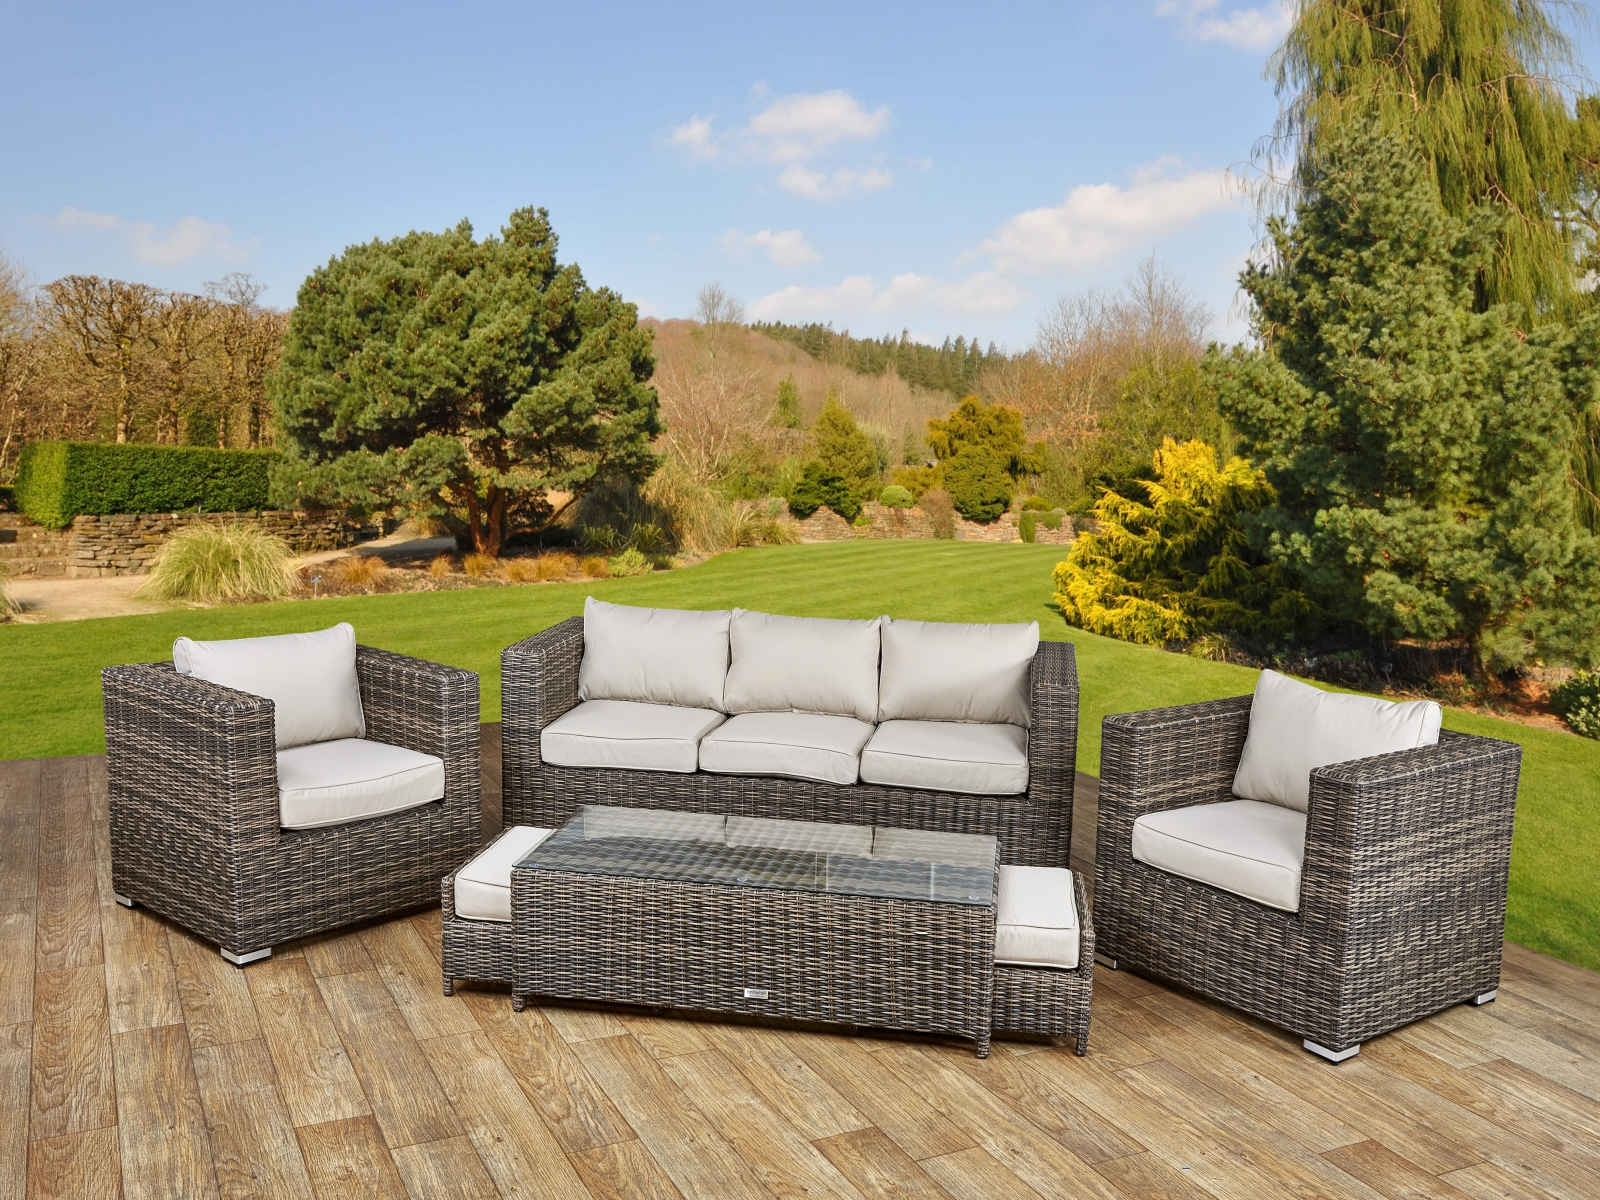 Sofa : Tosh Furniture Outdoor Gray Sofa Set Fantastic Furniture Inside Fashionable Outdoor Sofa Chairs (View 16 of 20)